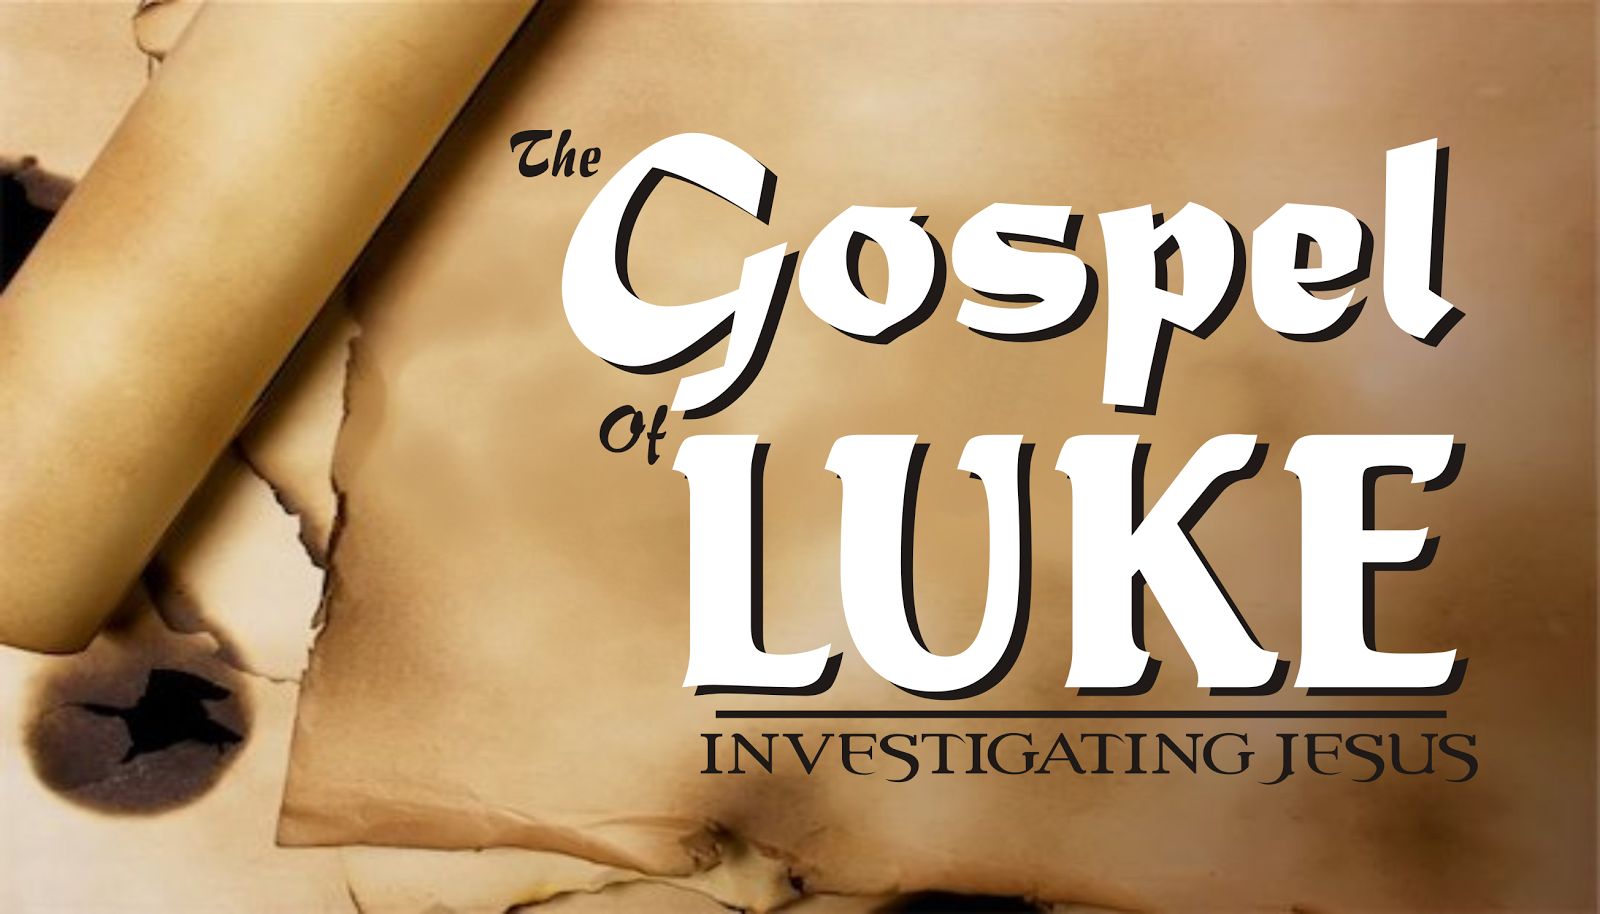 gospel of luke Biblical teaching 10: the gospel of luke: parables jesus told much of jesus' teaching was accomplished through the telling of parables—a very common teaching method in his day.